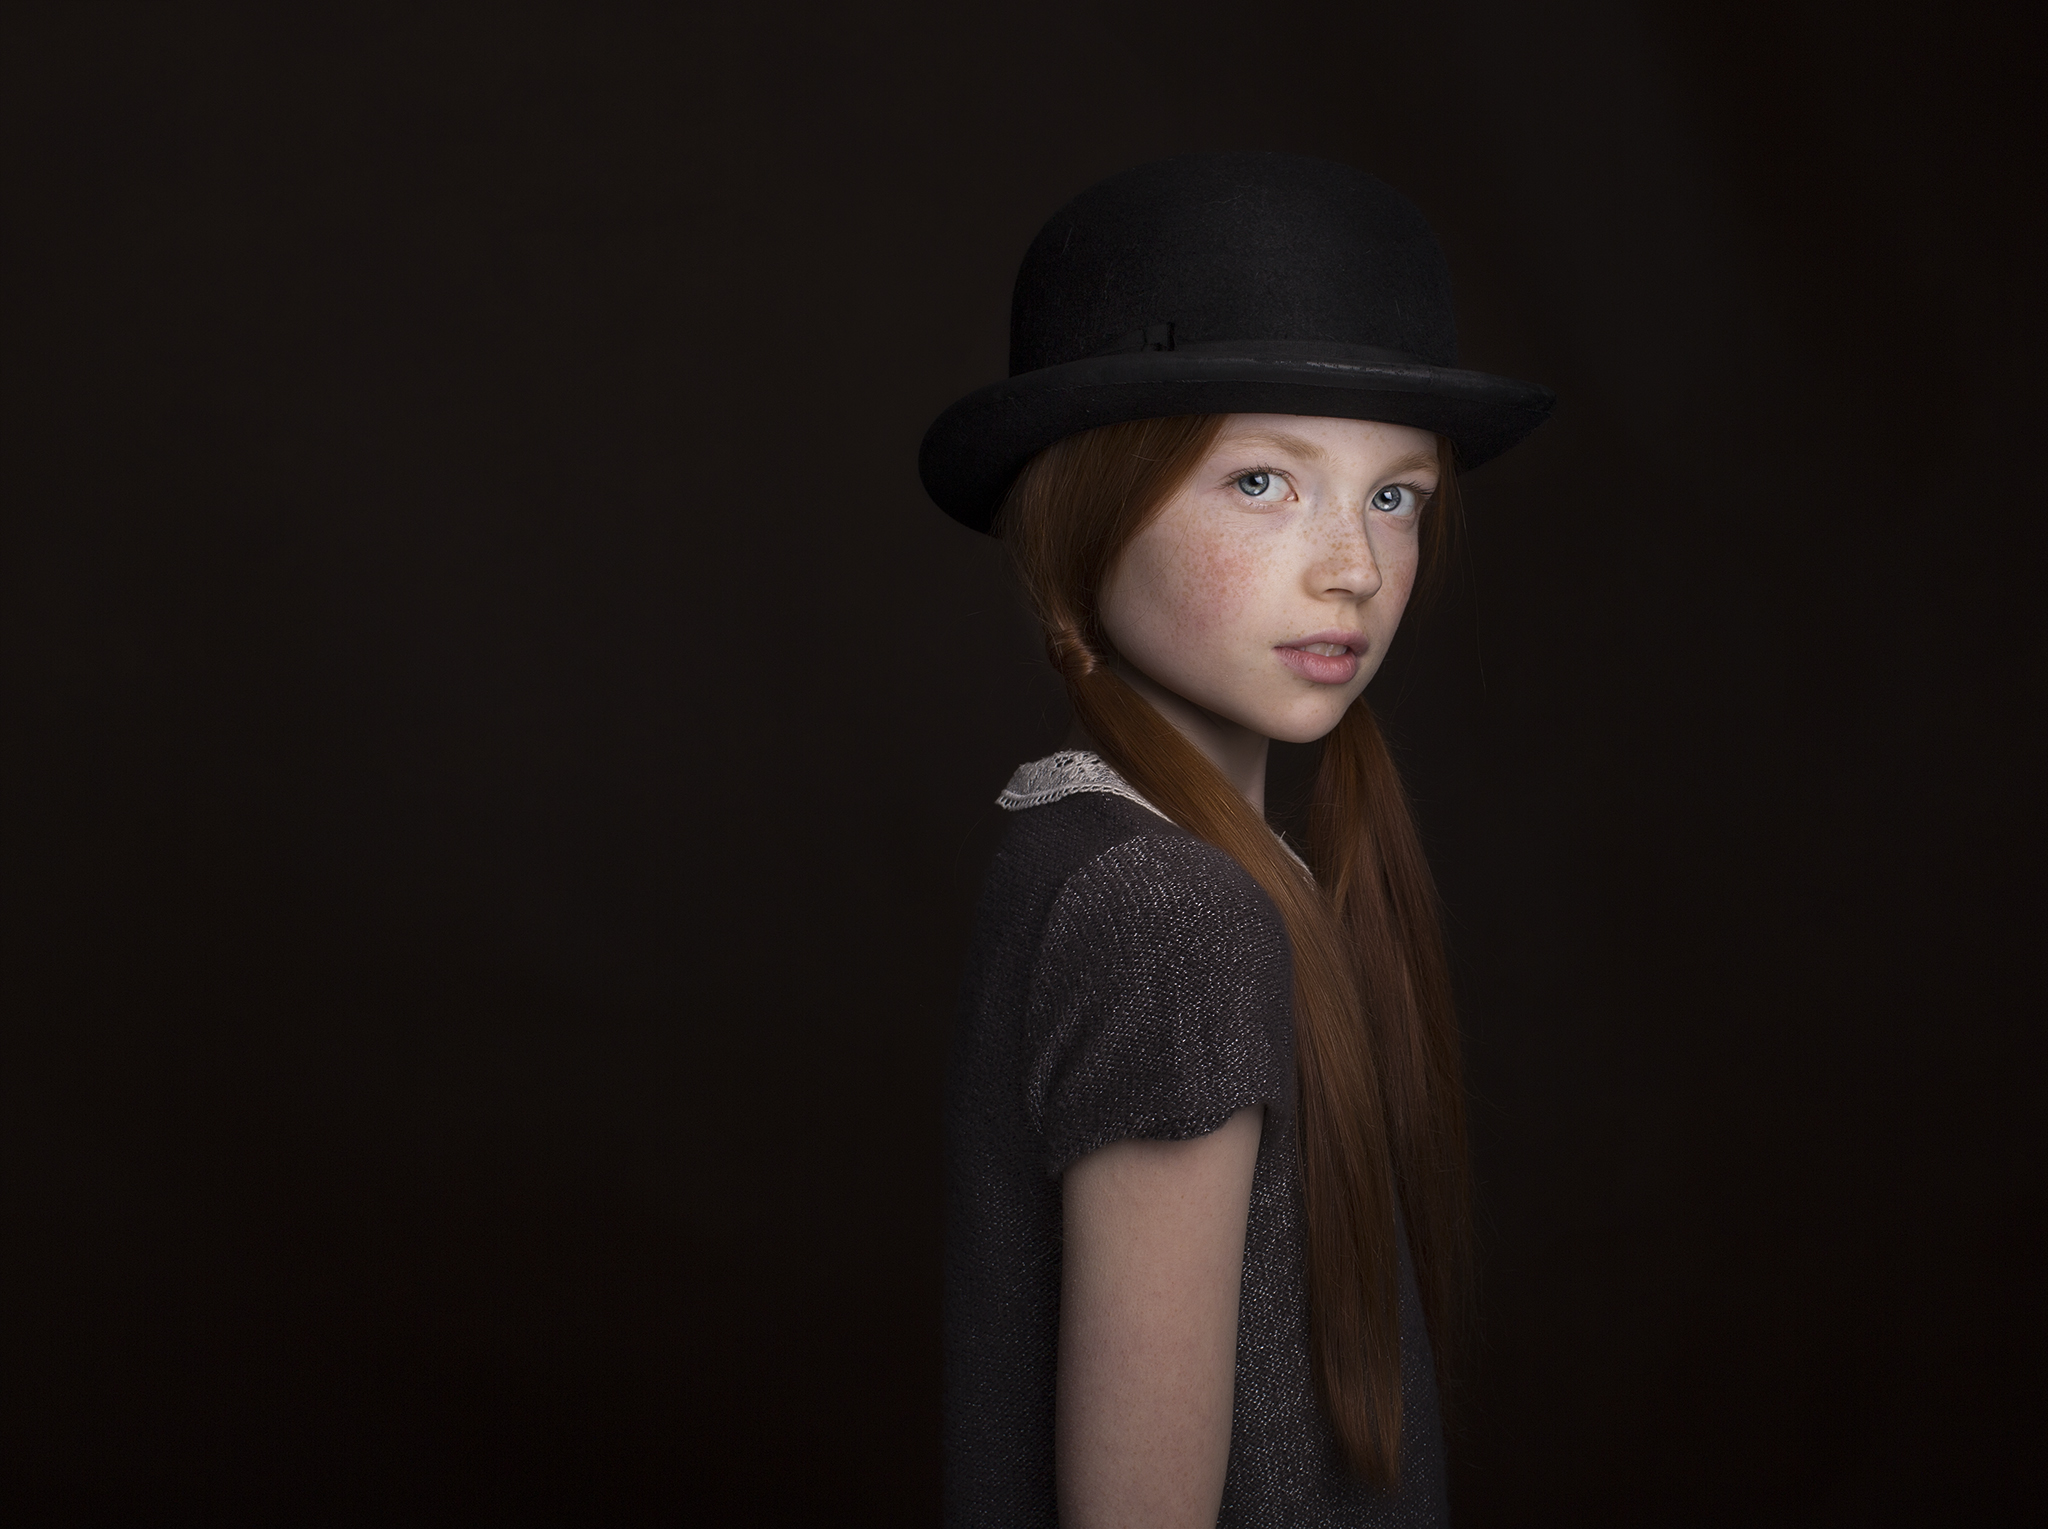 Elizabethg_fineart_portrait_photography_esme_kidslondon_model_agency_003.jpg